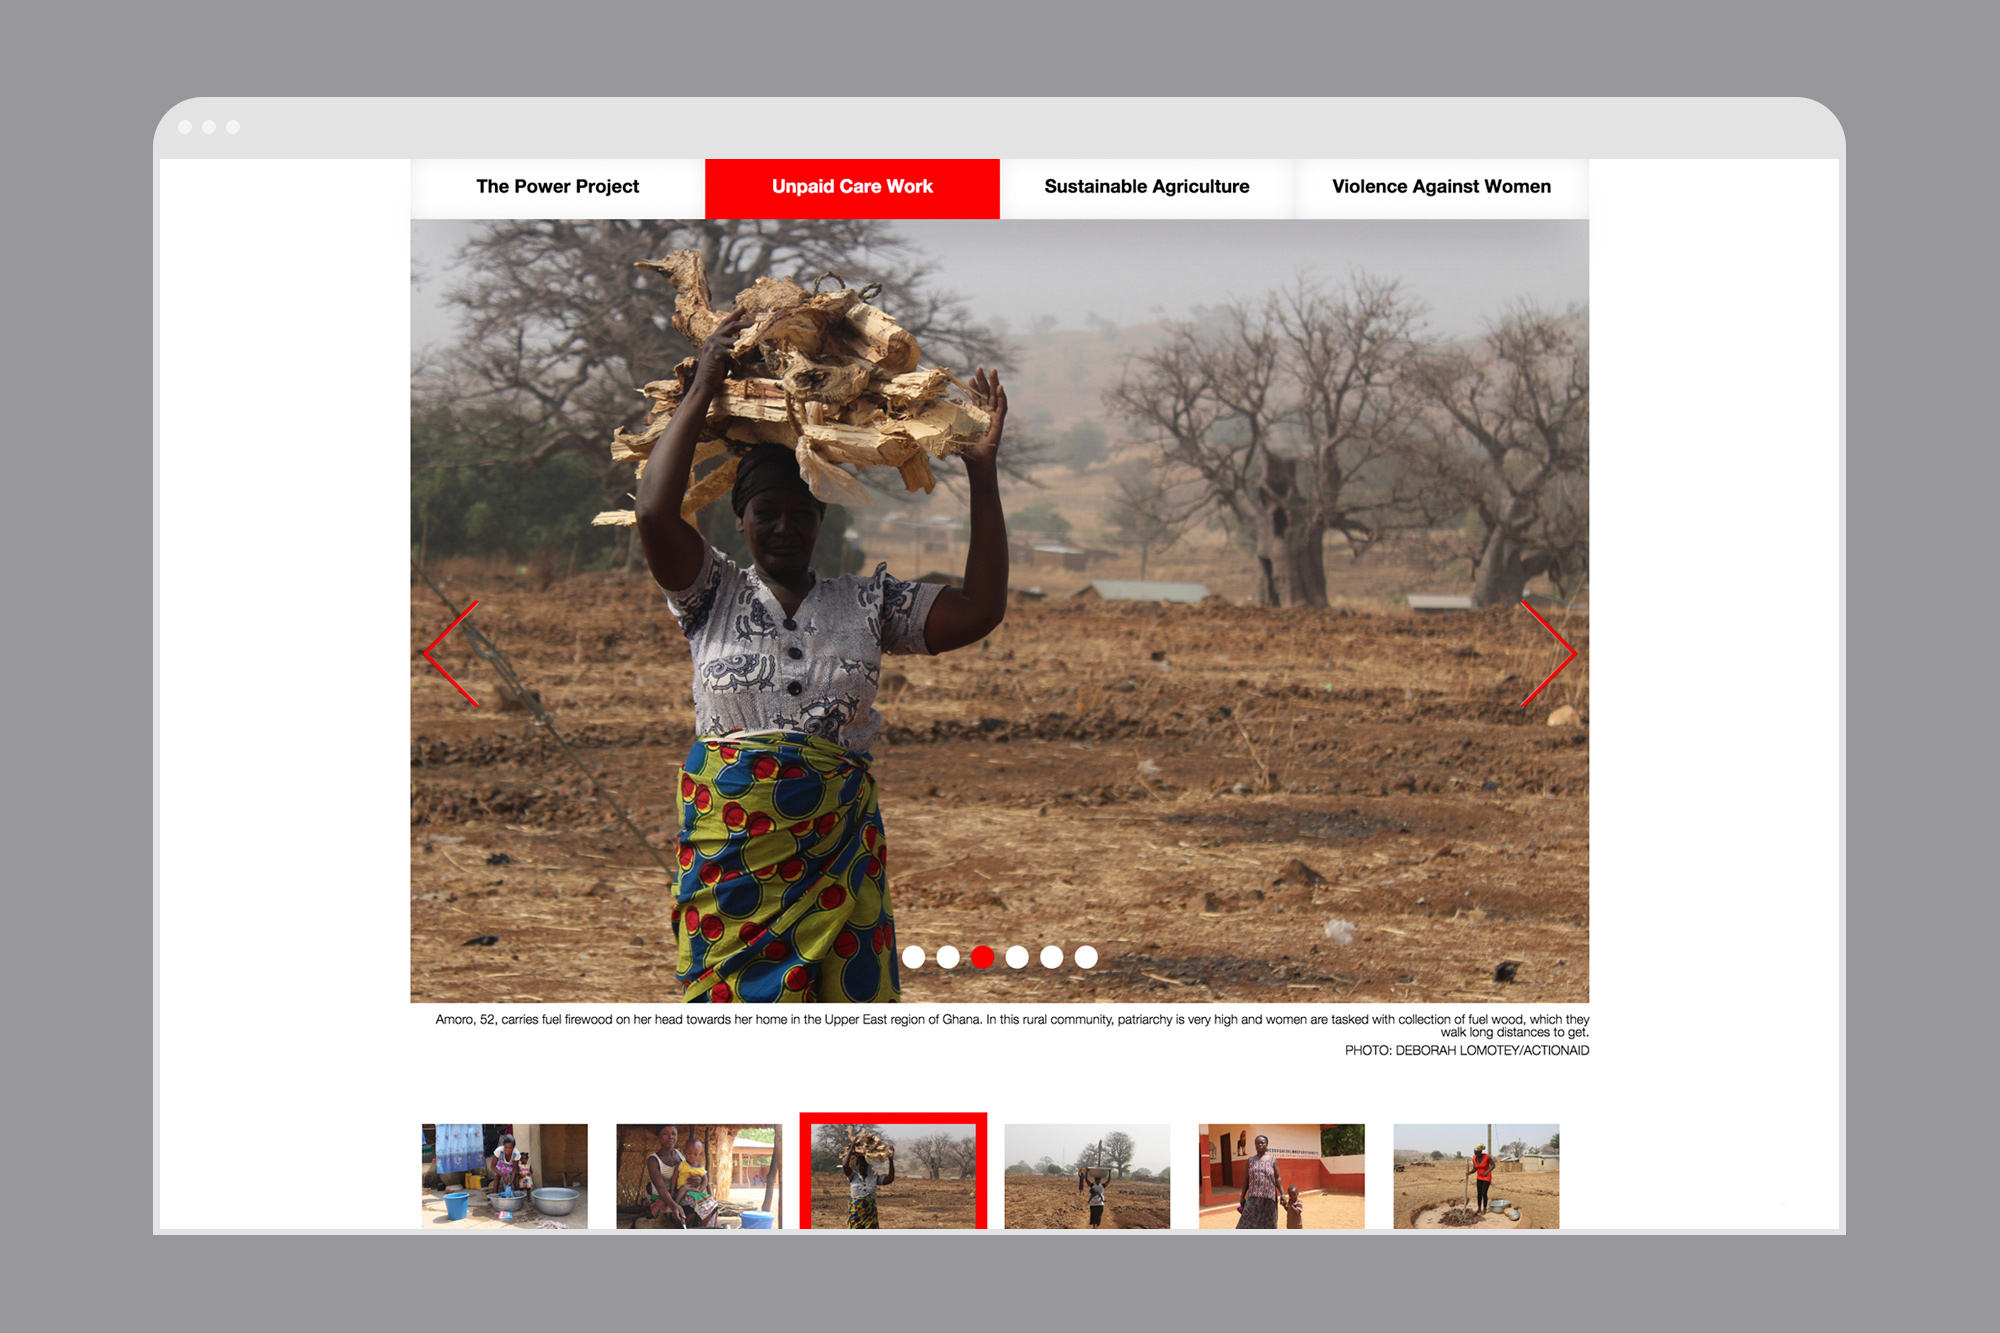 gpj-actionaid-power-project-v5